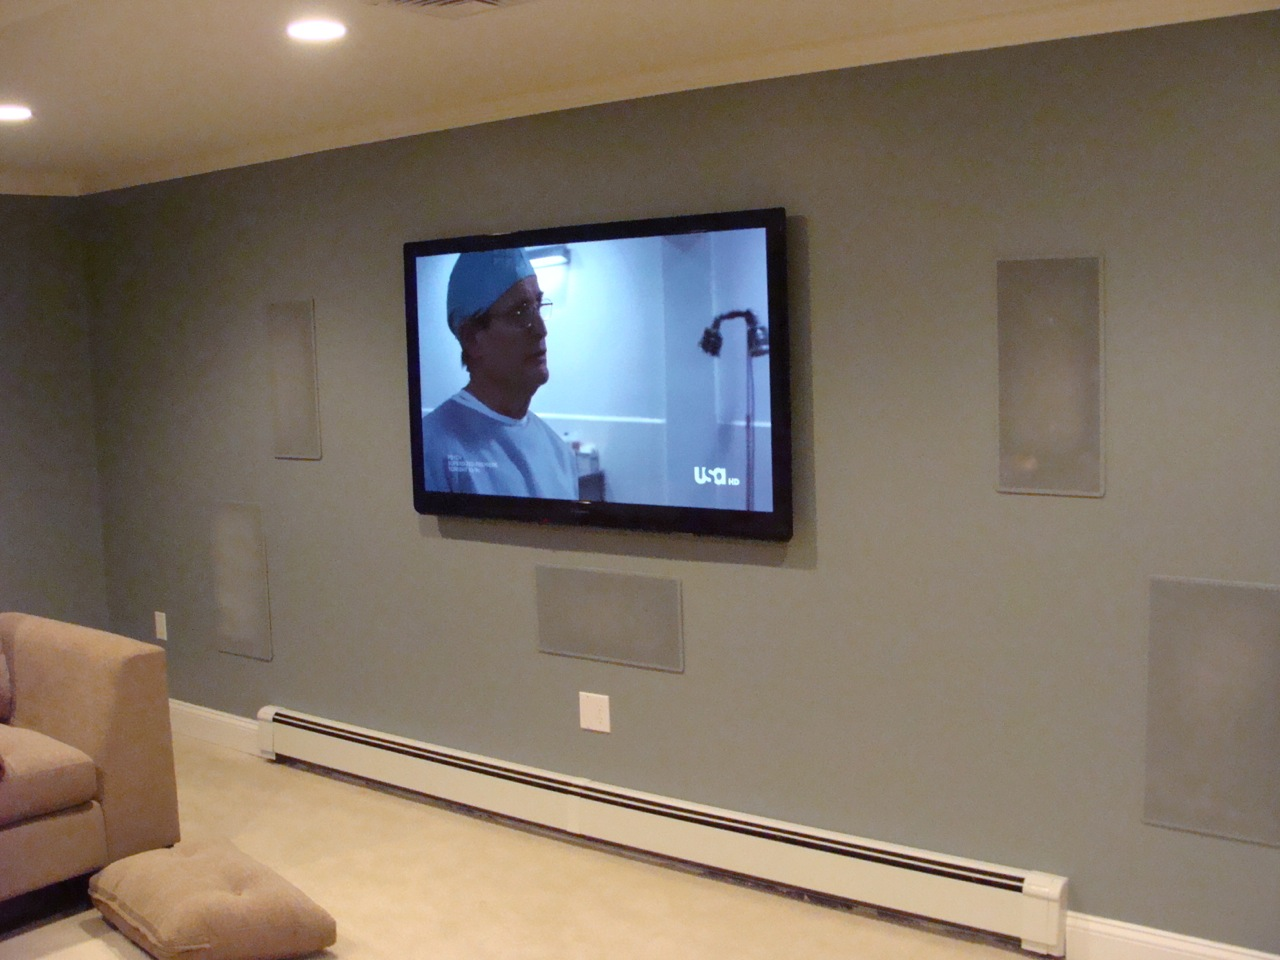 The Media Room Screen Wall With Speaker Grills Painted And The TV  Installed. Having Equipment